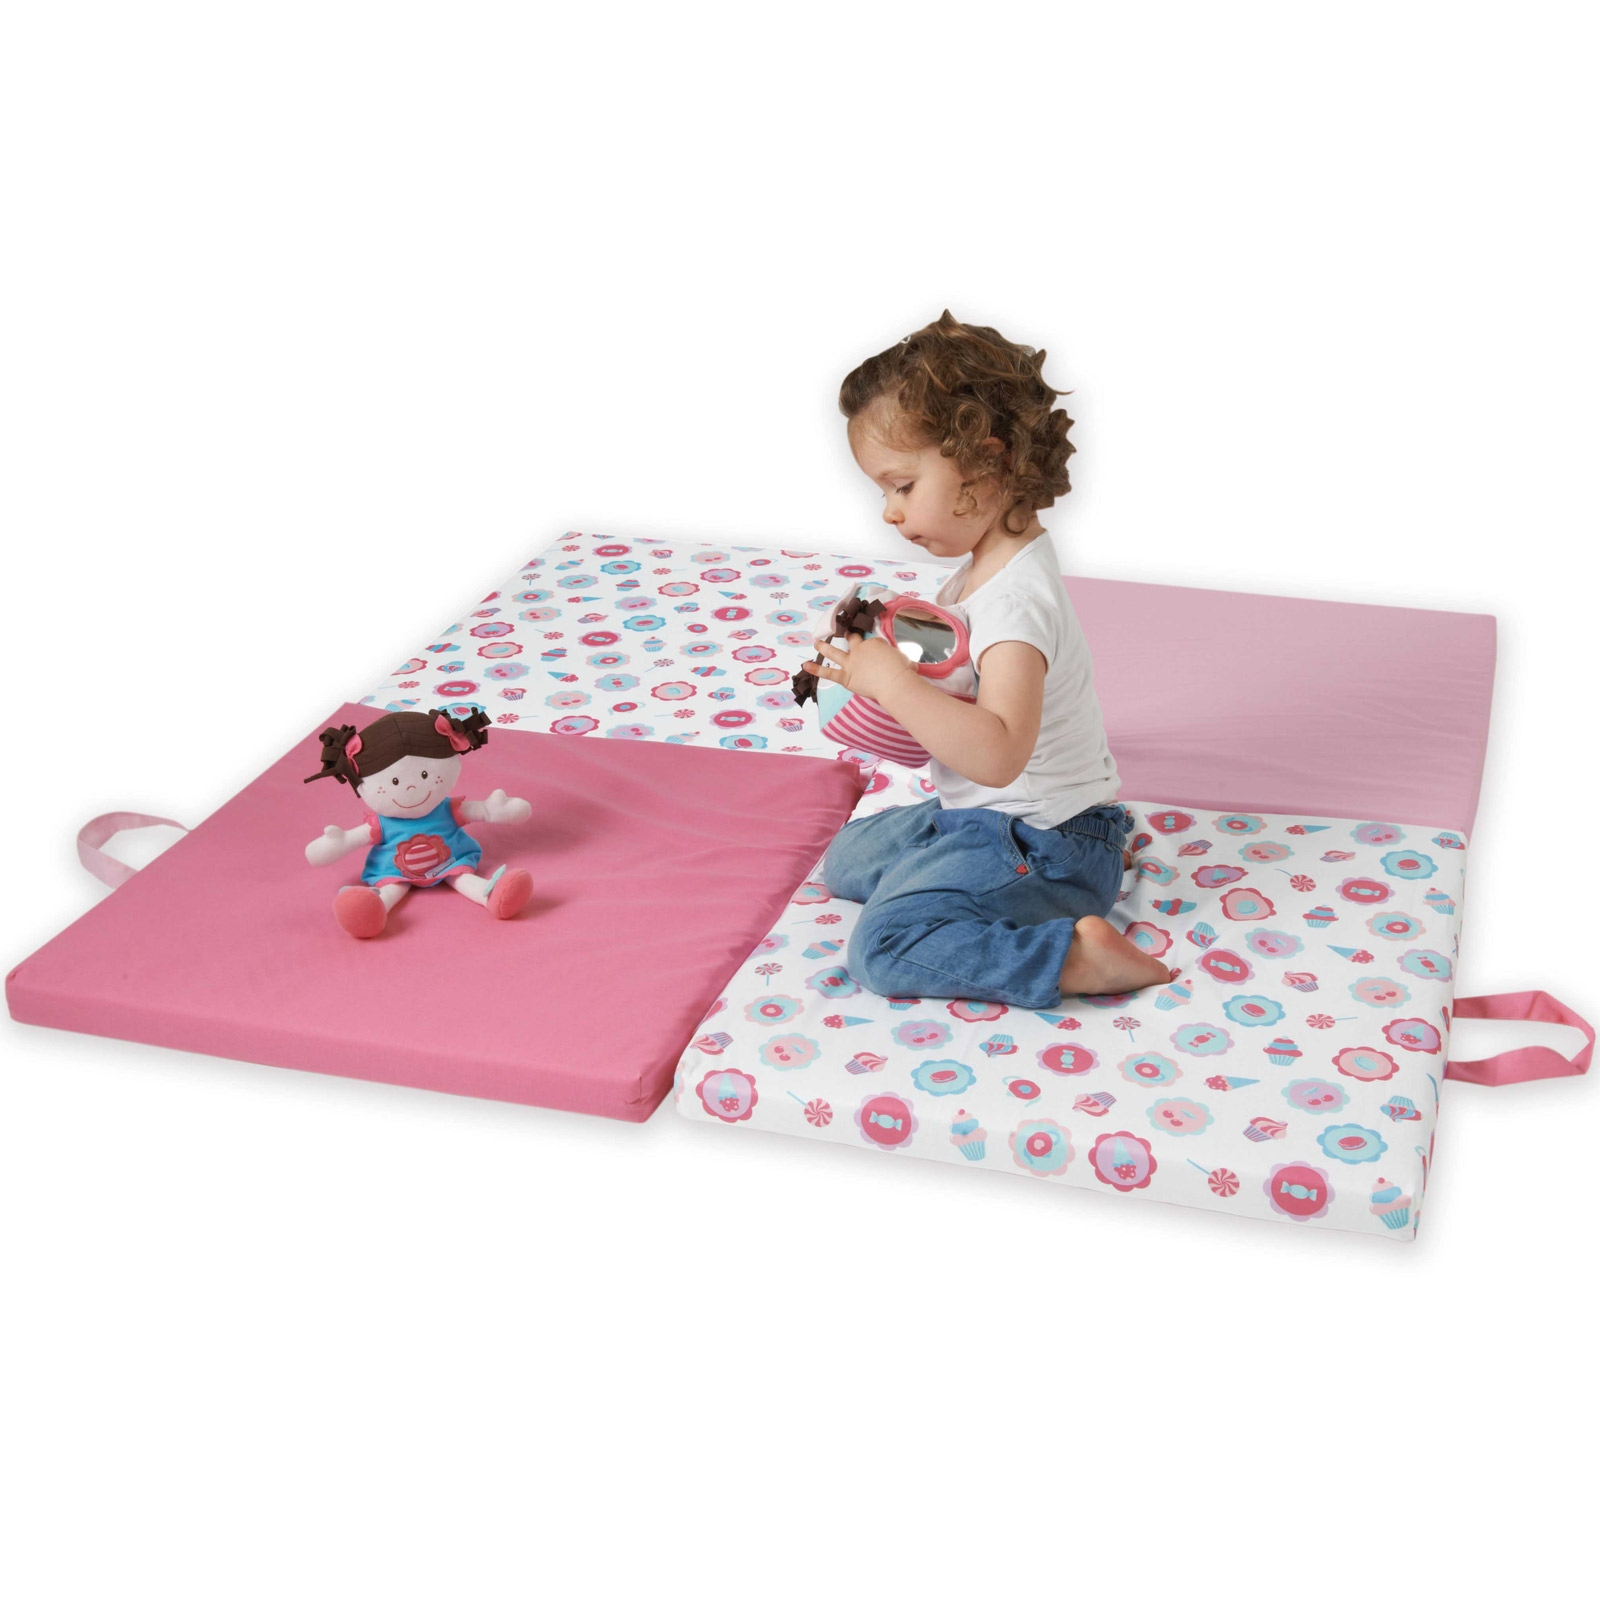 tapis de jeu bebe 1 an. Black Bedroom Furniture Sets. Home Design Ideas